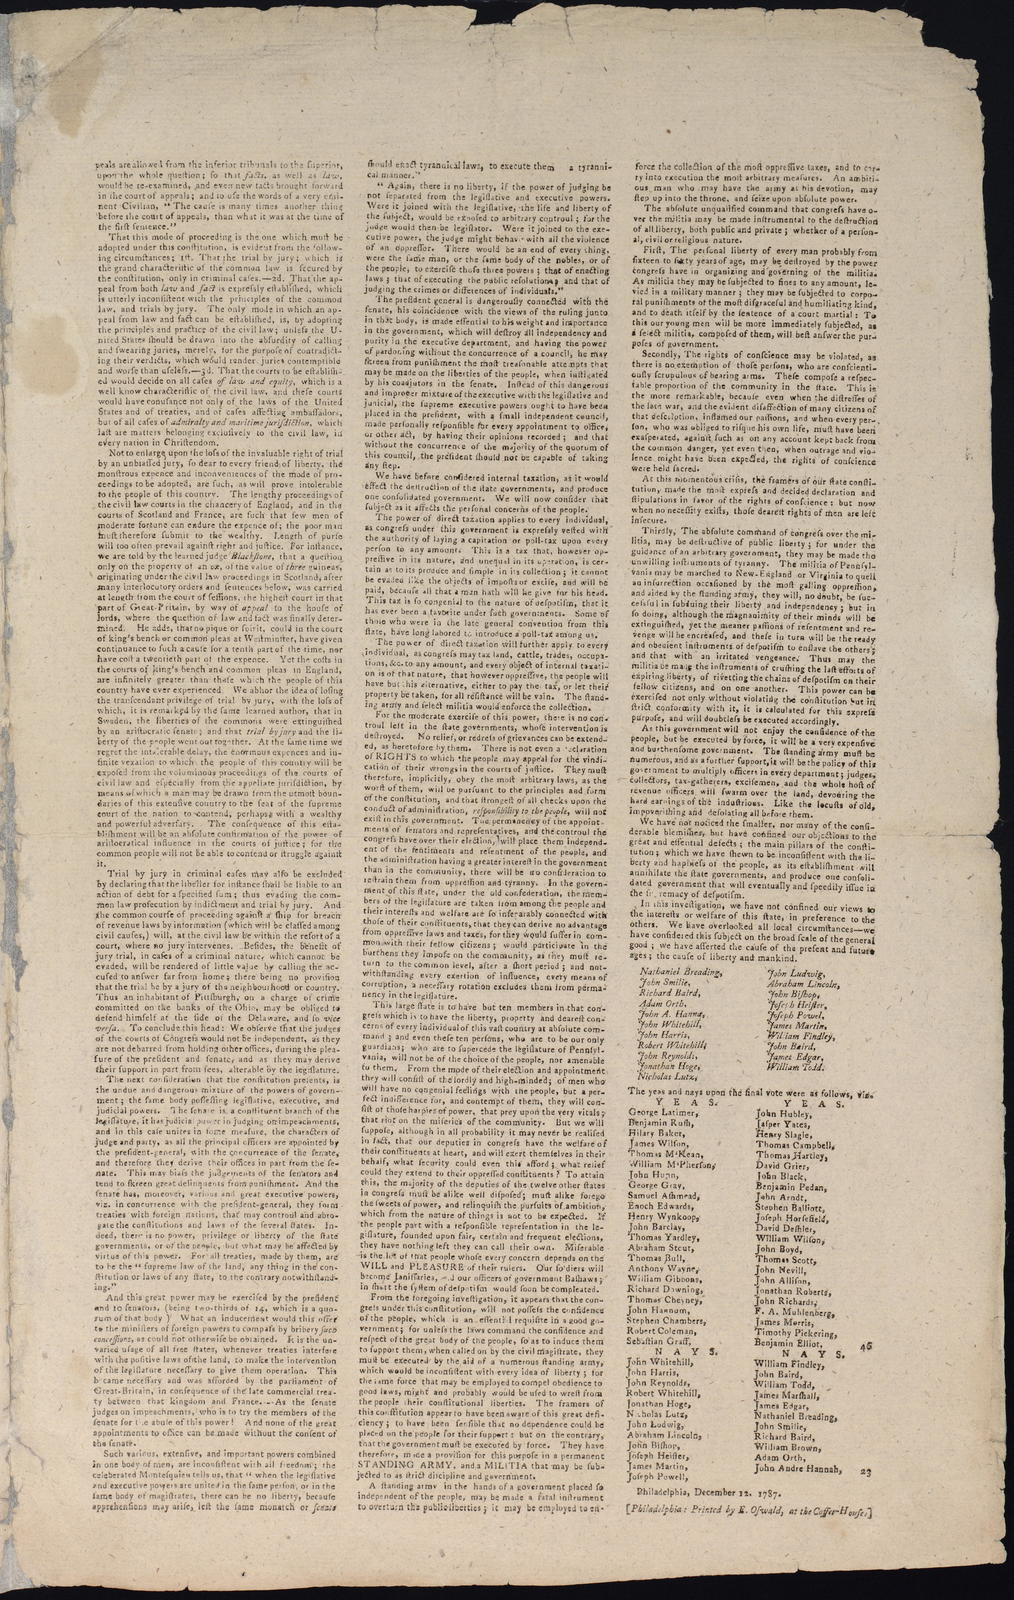 The Address and reasons of dissent of the minority of the convention, of the state of Pennsylvania, to their constituents.